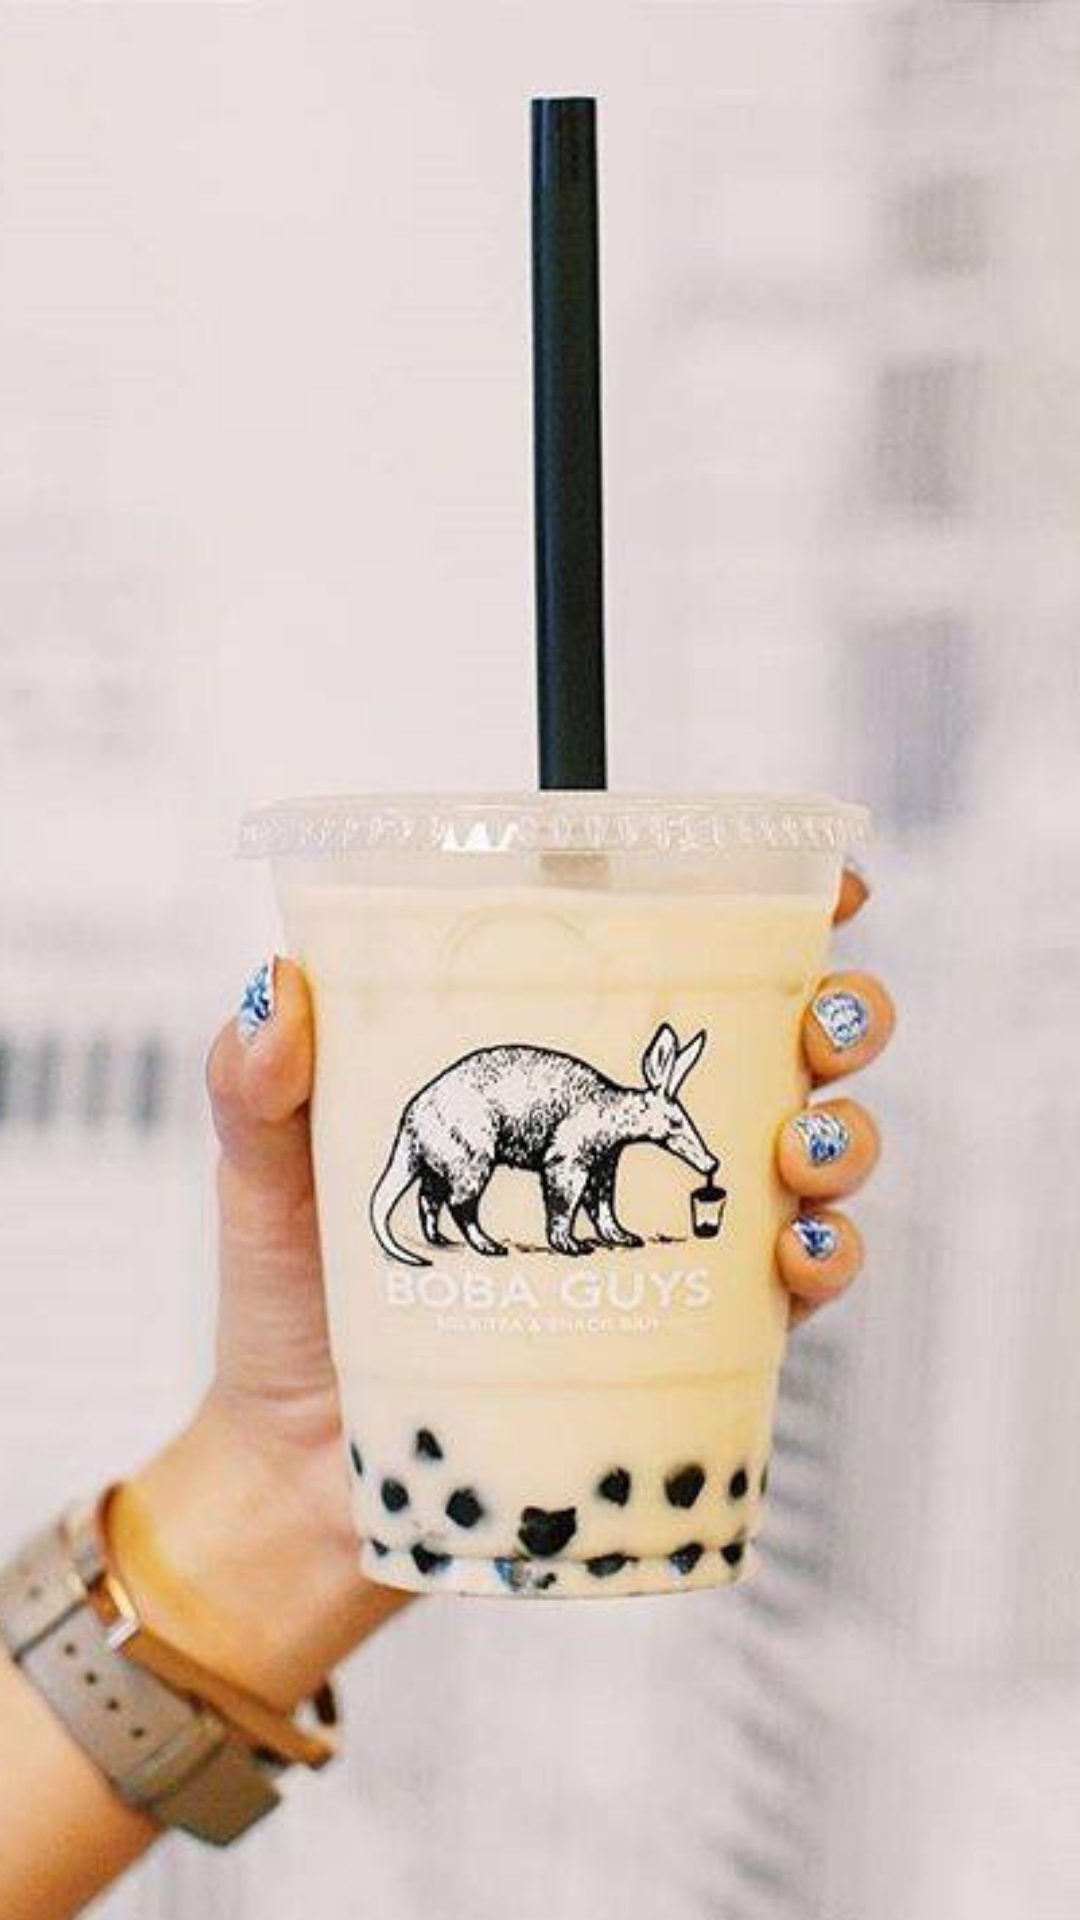 They've made lots of bubble tea, and now they'll make the